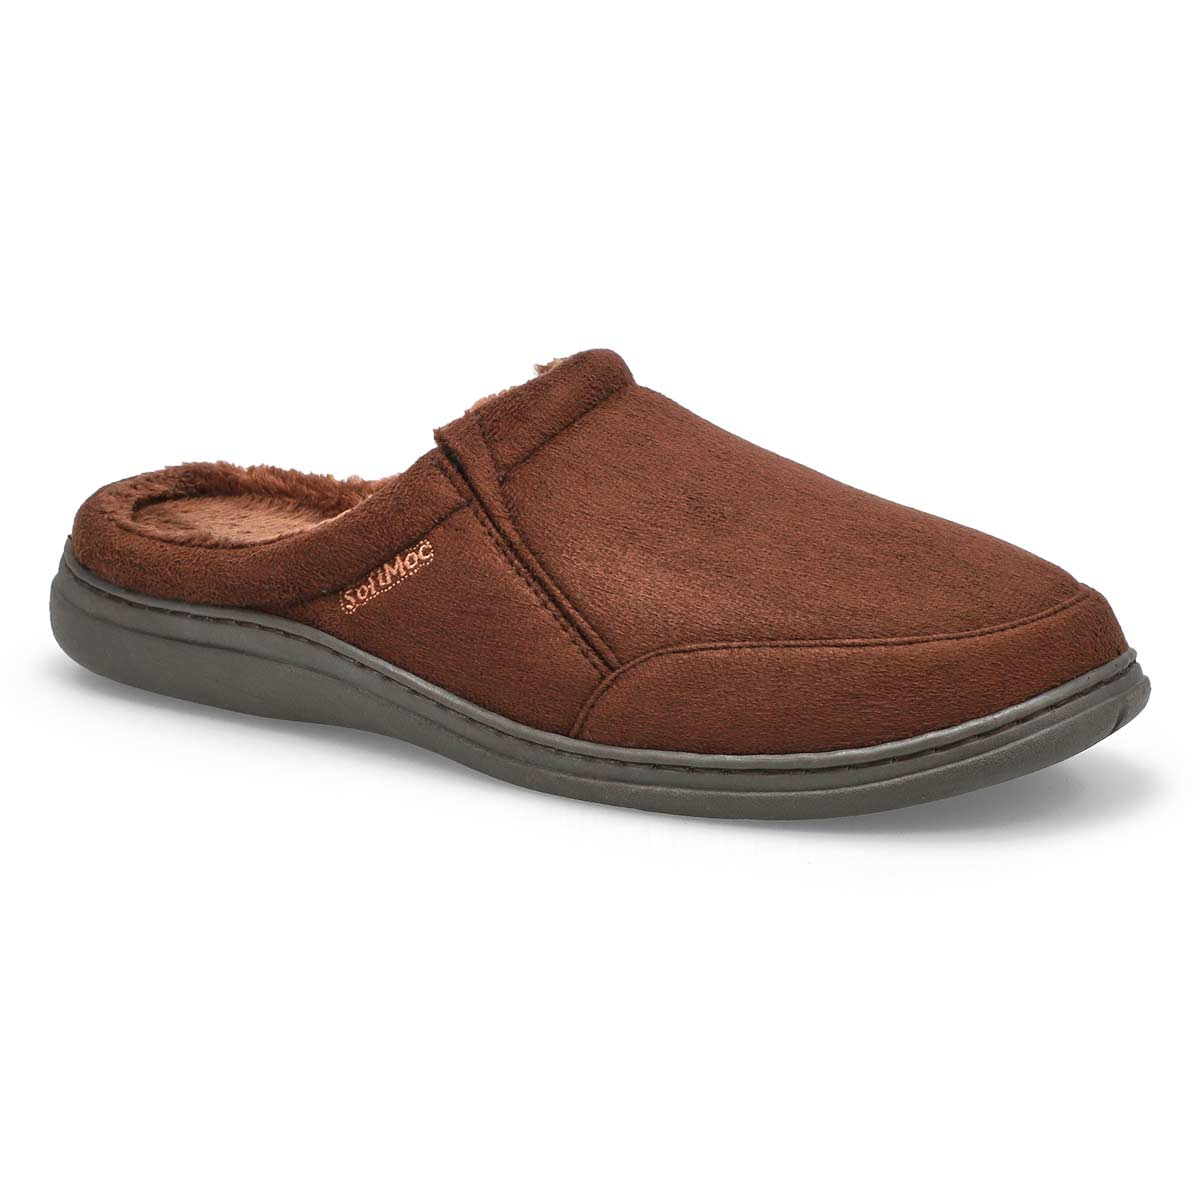 Mns Polar II brown open back slipper